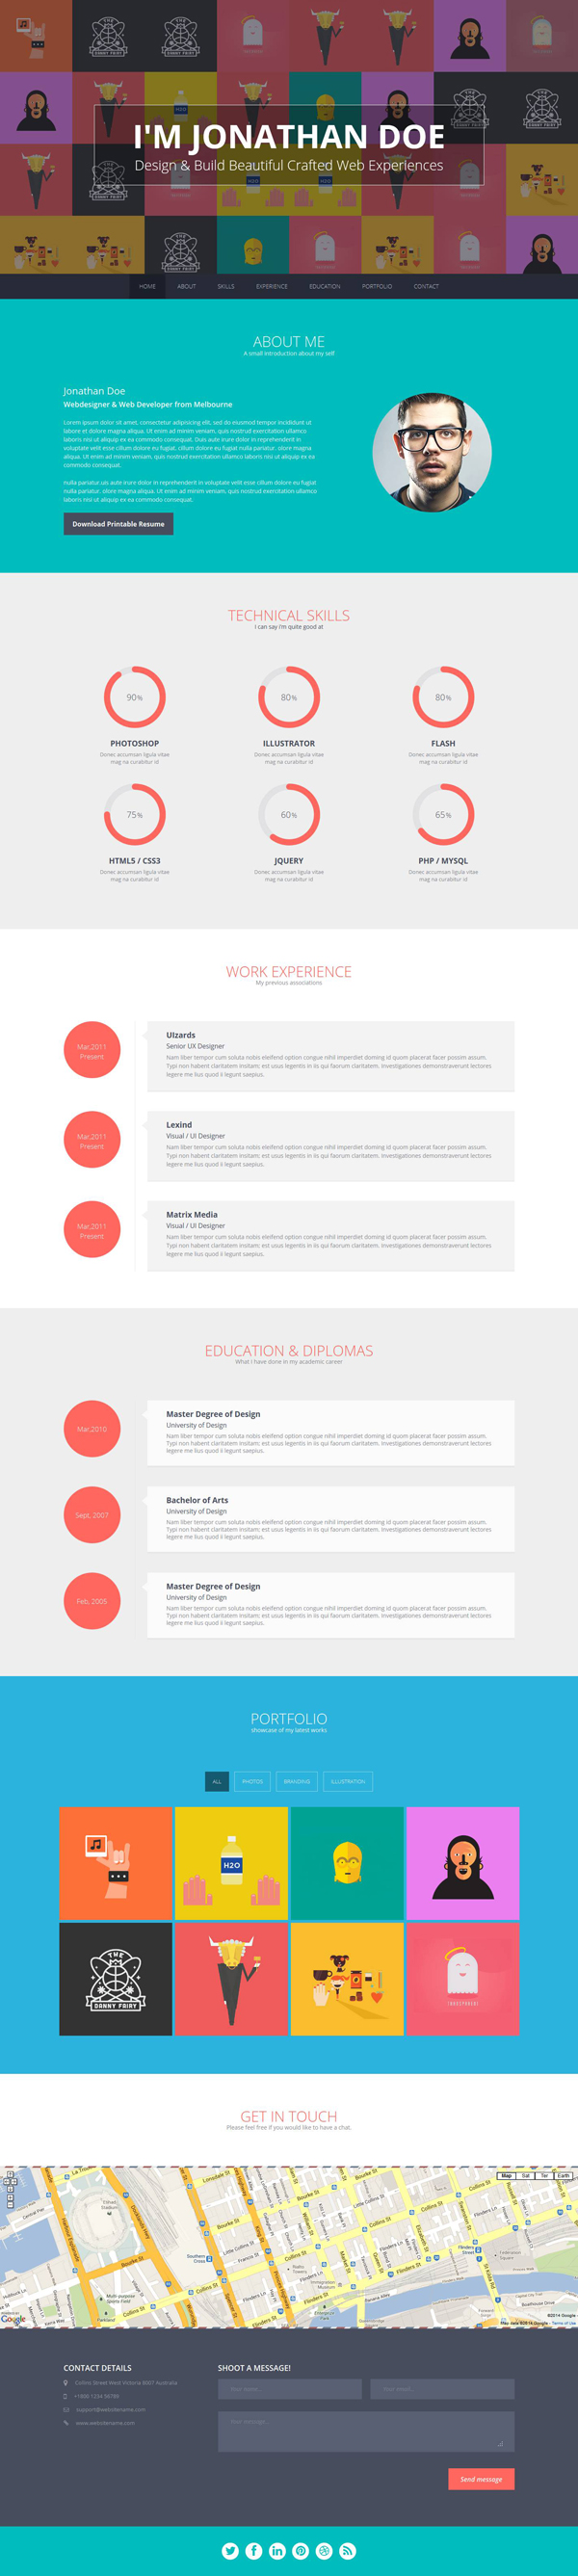 Flato free responsive online cv resume templates photoshop flato free responsive online cv resume templates yelopaper Choice Image